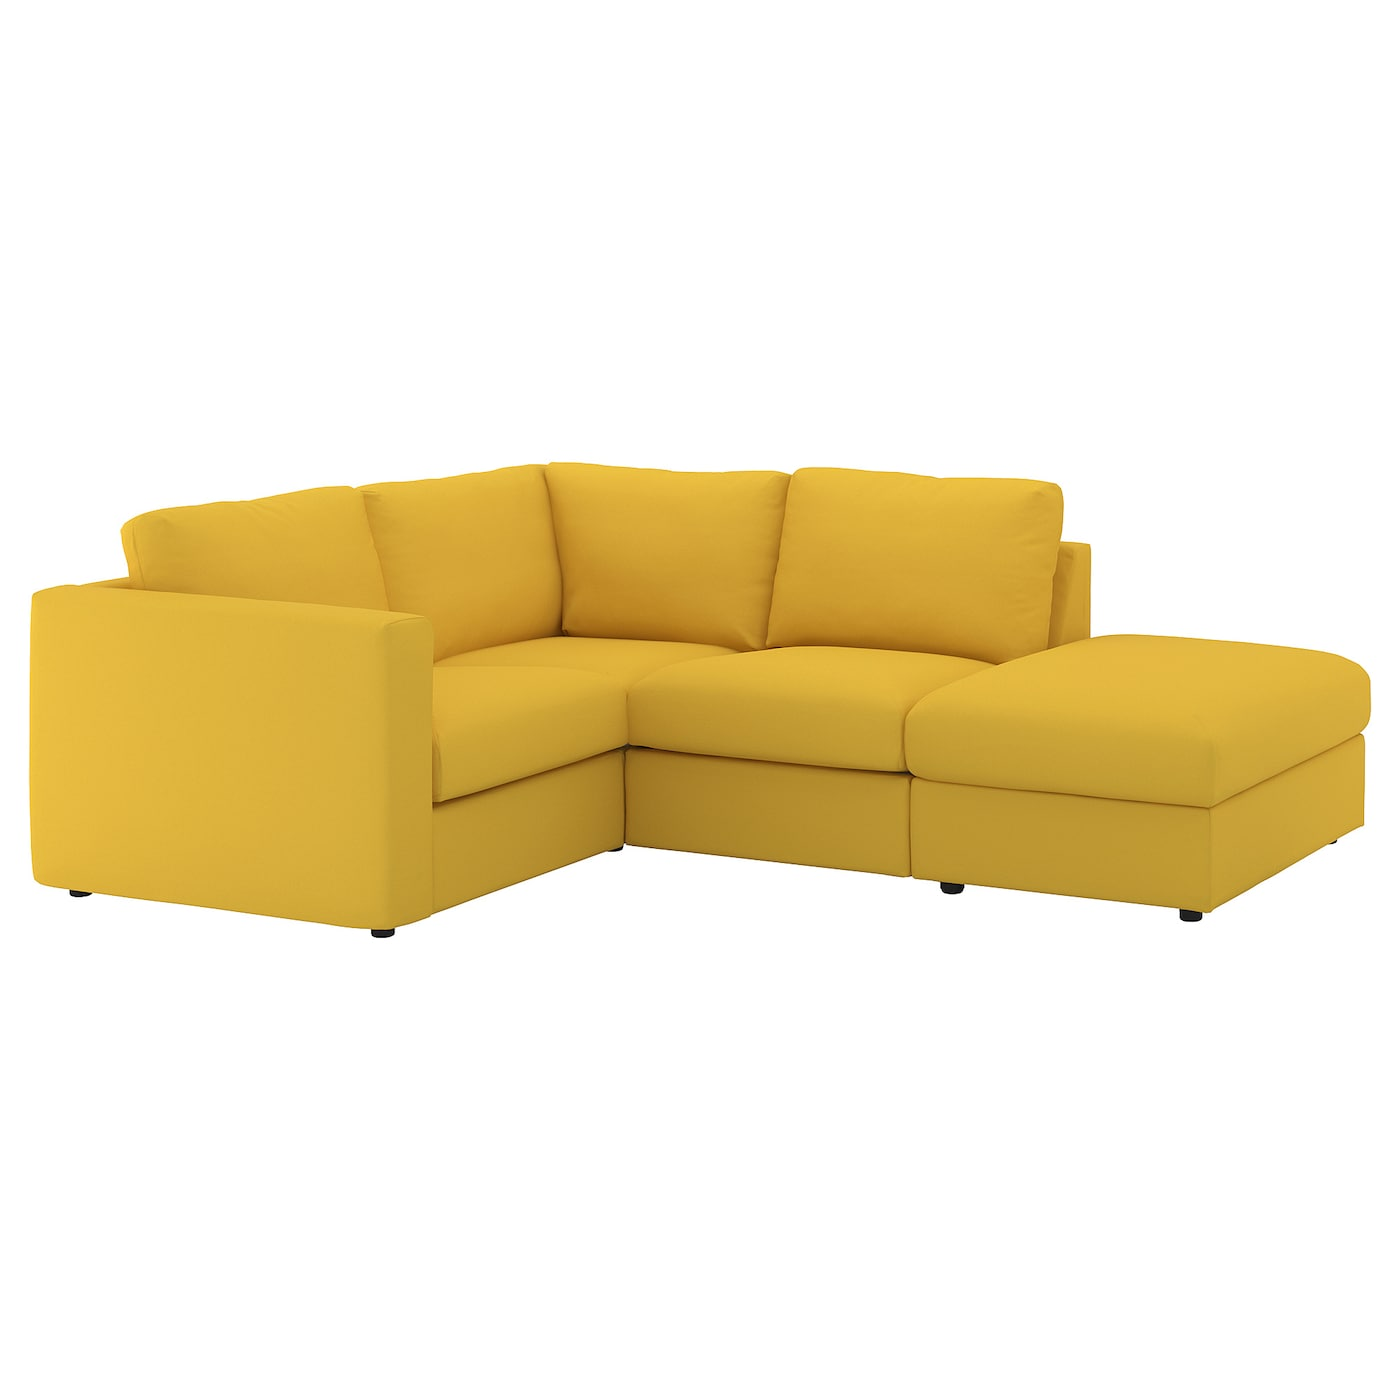 IKEA VIMLE corner sofa, 3-seat 10 year guarantee. Read about the terms in the guarantee brochure.